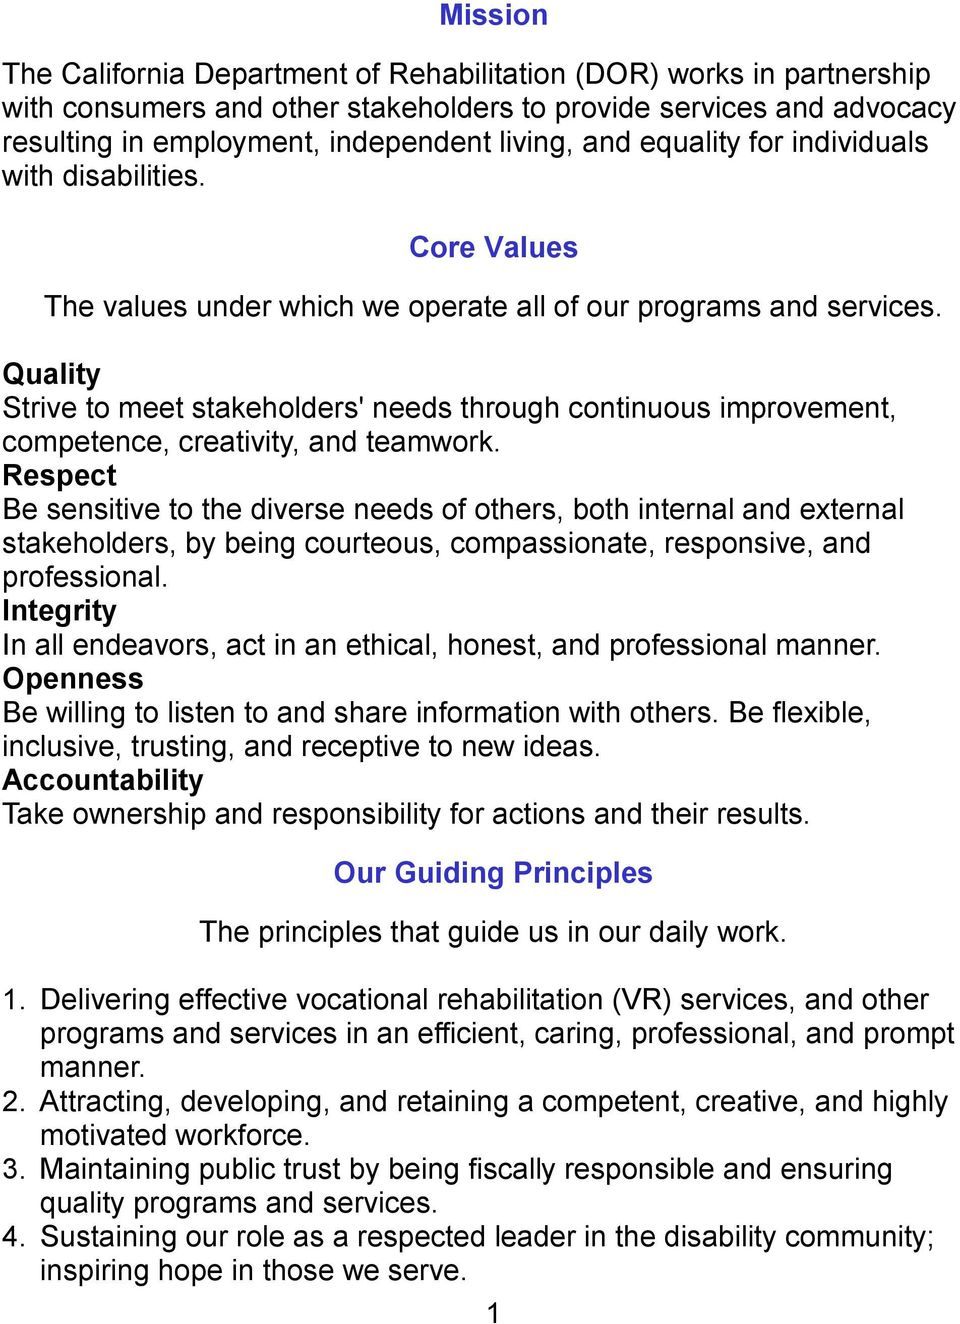 Quality Strive to meet stakeholders' needs through continuous improvement, competence, creativity, and teamwork.